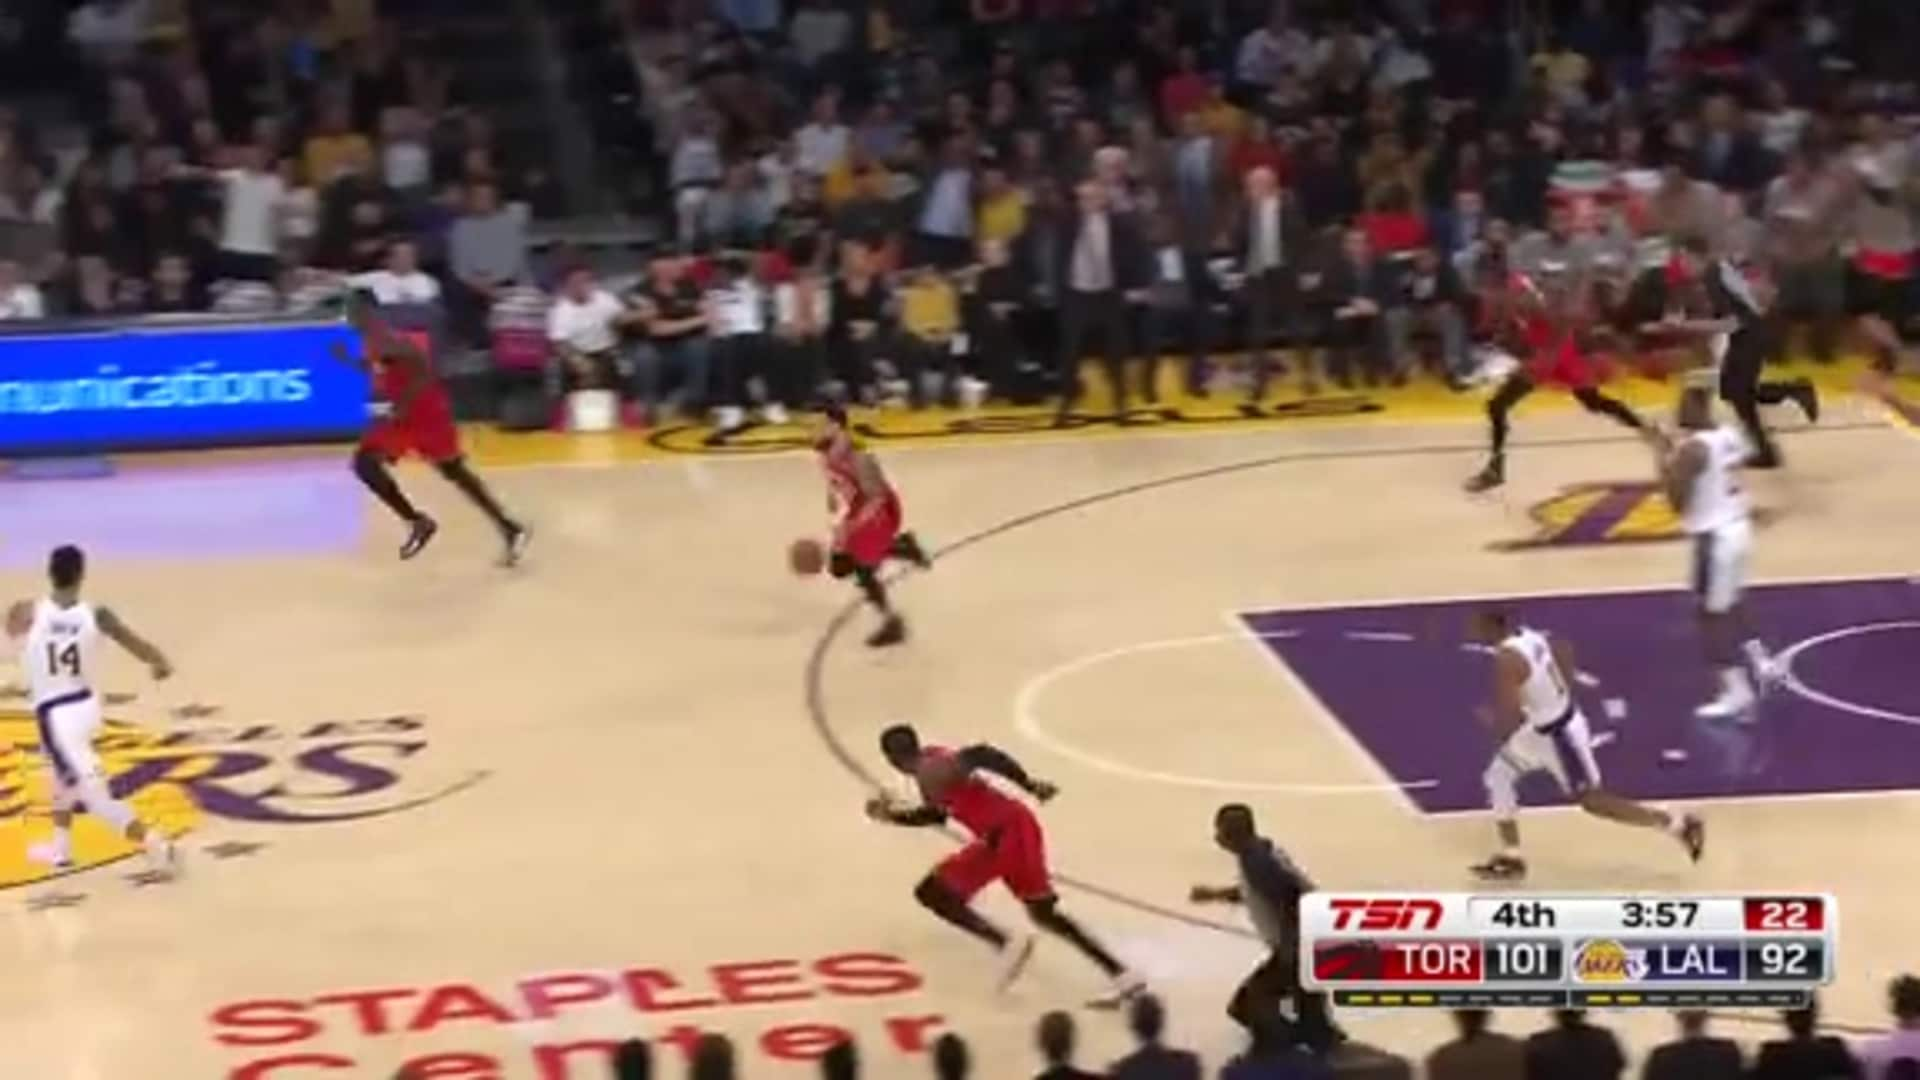 Game Highlights: Raptors at Lakers - November 10, 2019